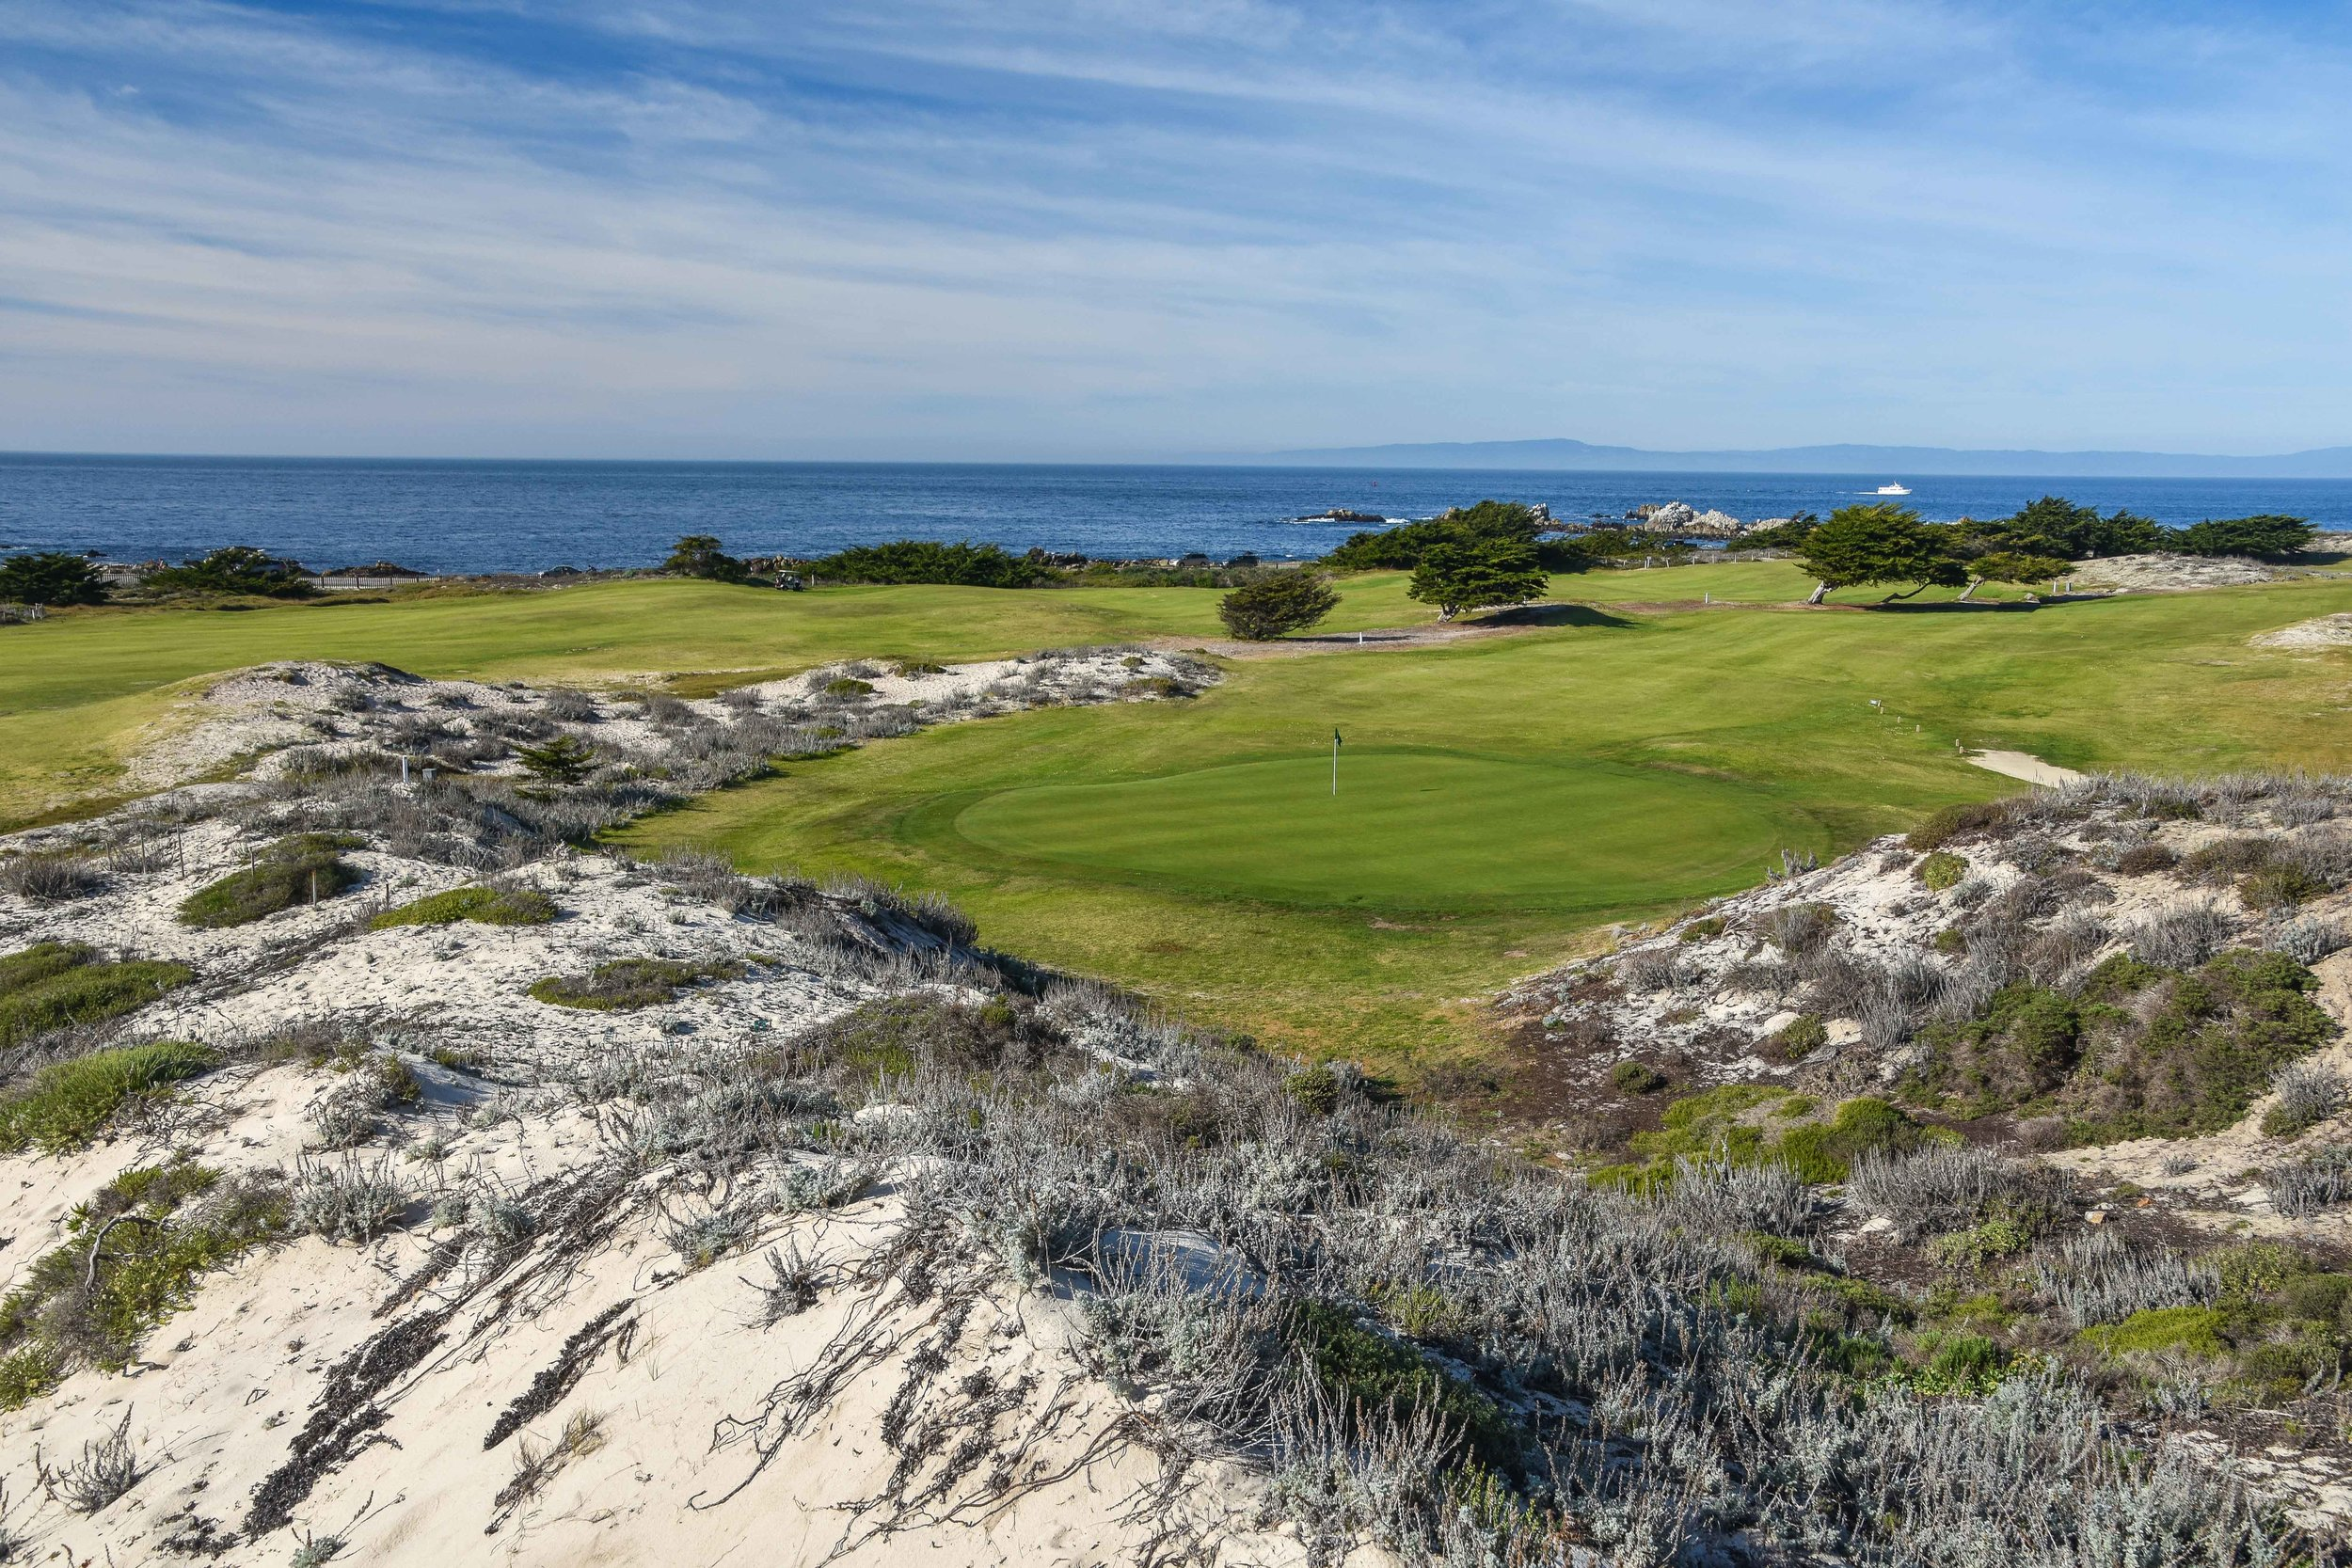 Pacific Grove Golf Links is on my list of must plays in Monterey.